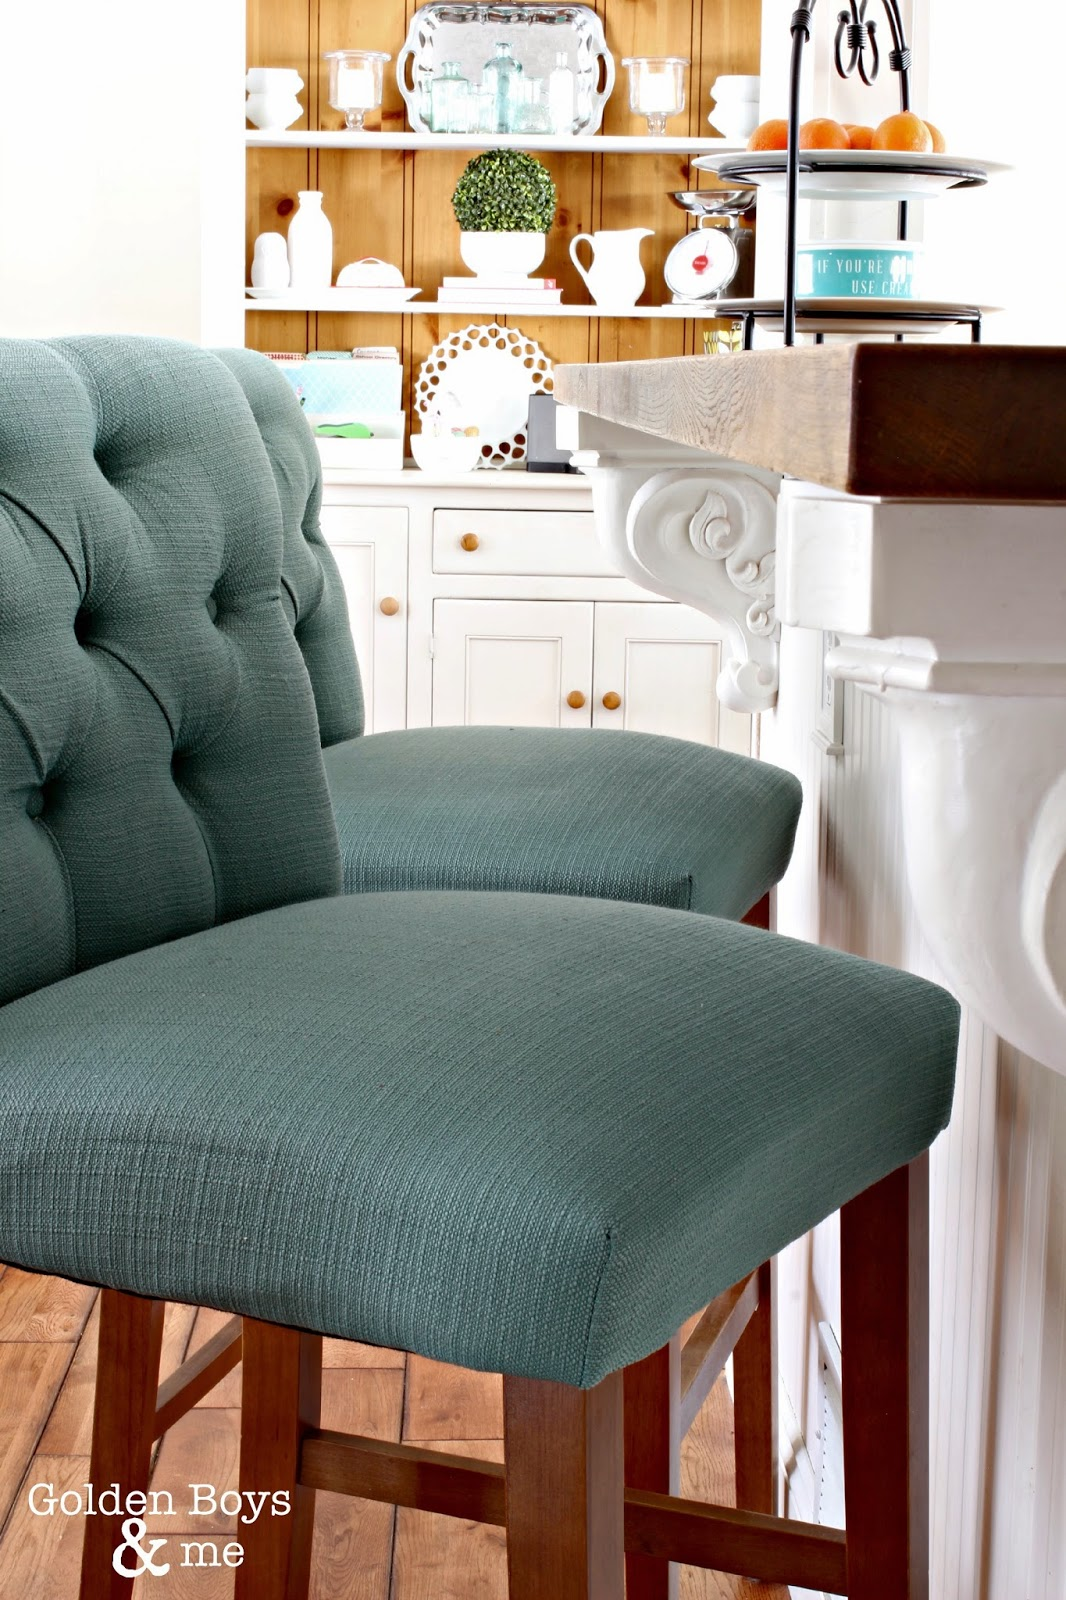 Target threshold stools with painted hutch-www.goldenboysandme.com